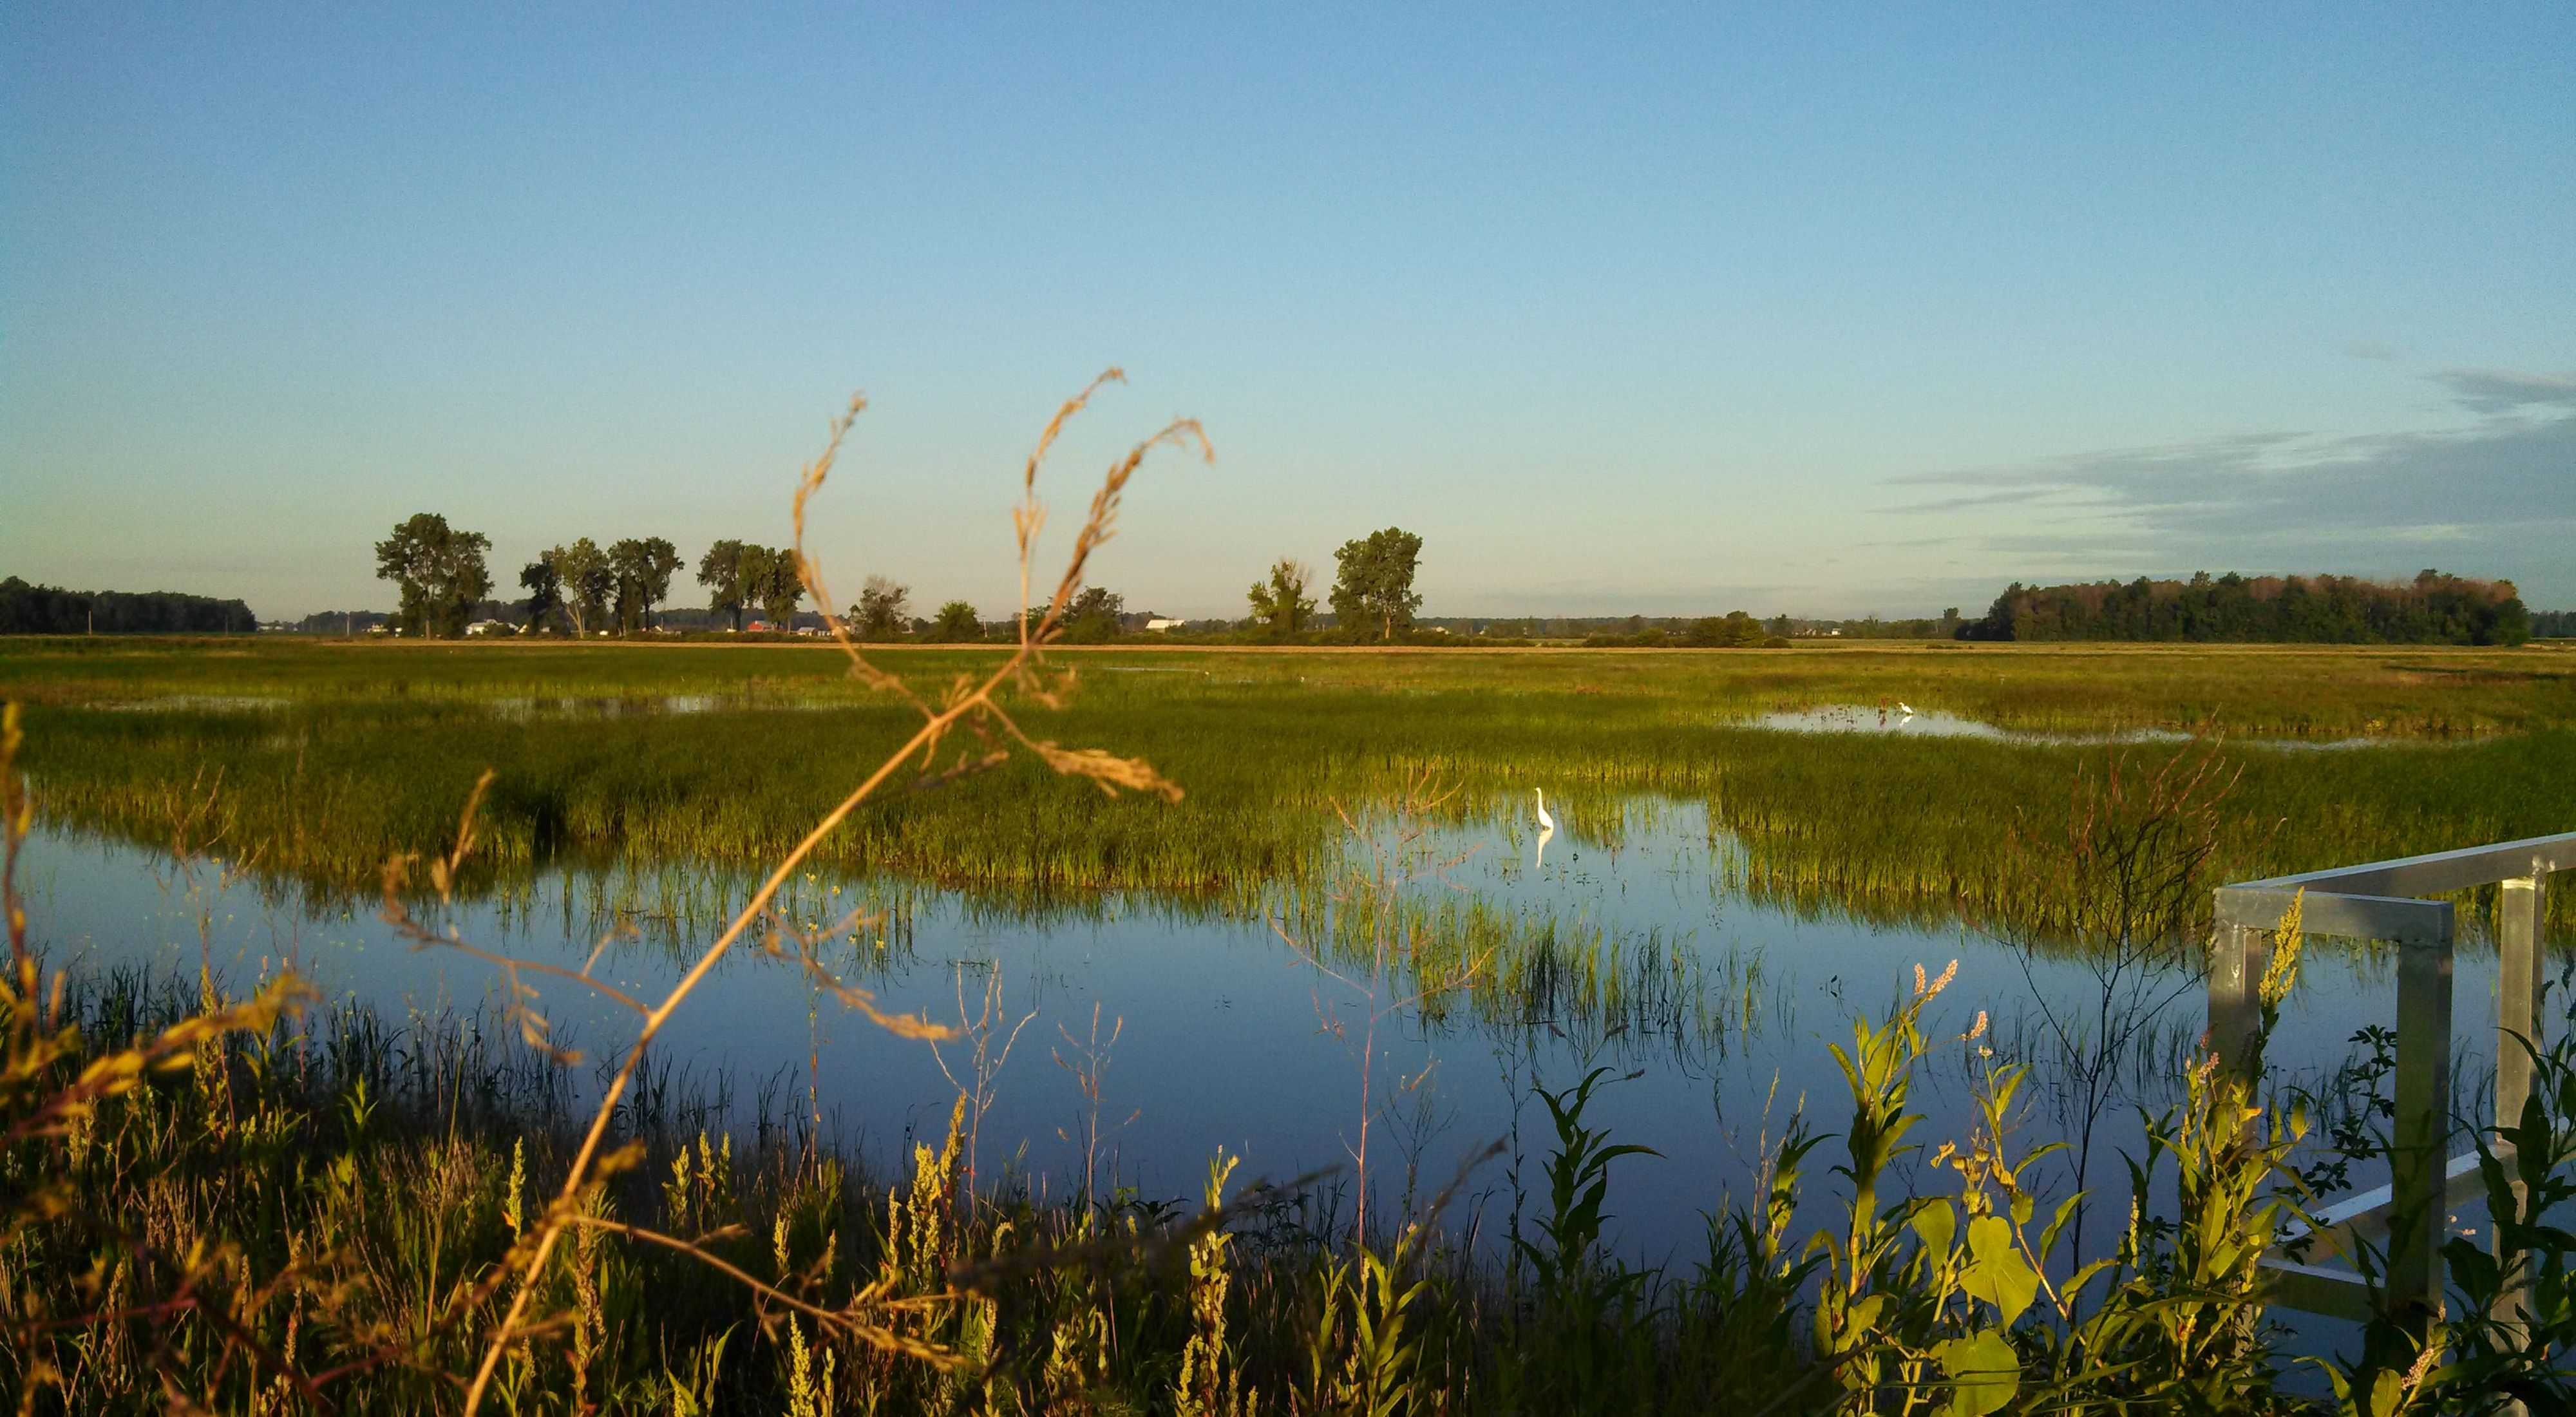 Looking over an open wetland field of grasses and water with a few white great egrets enjoying the new habitat.